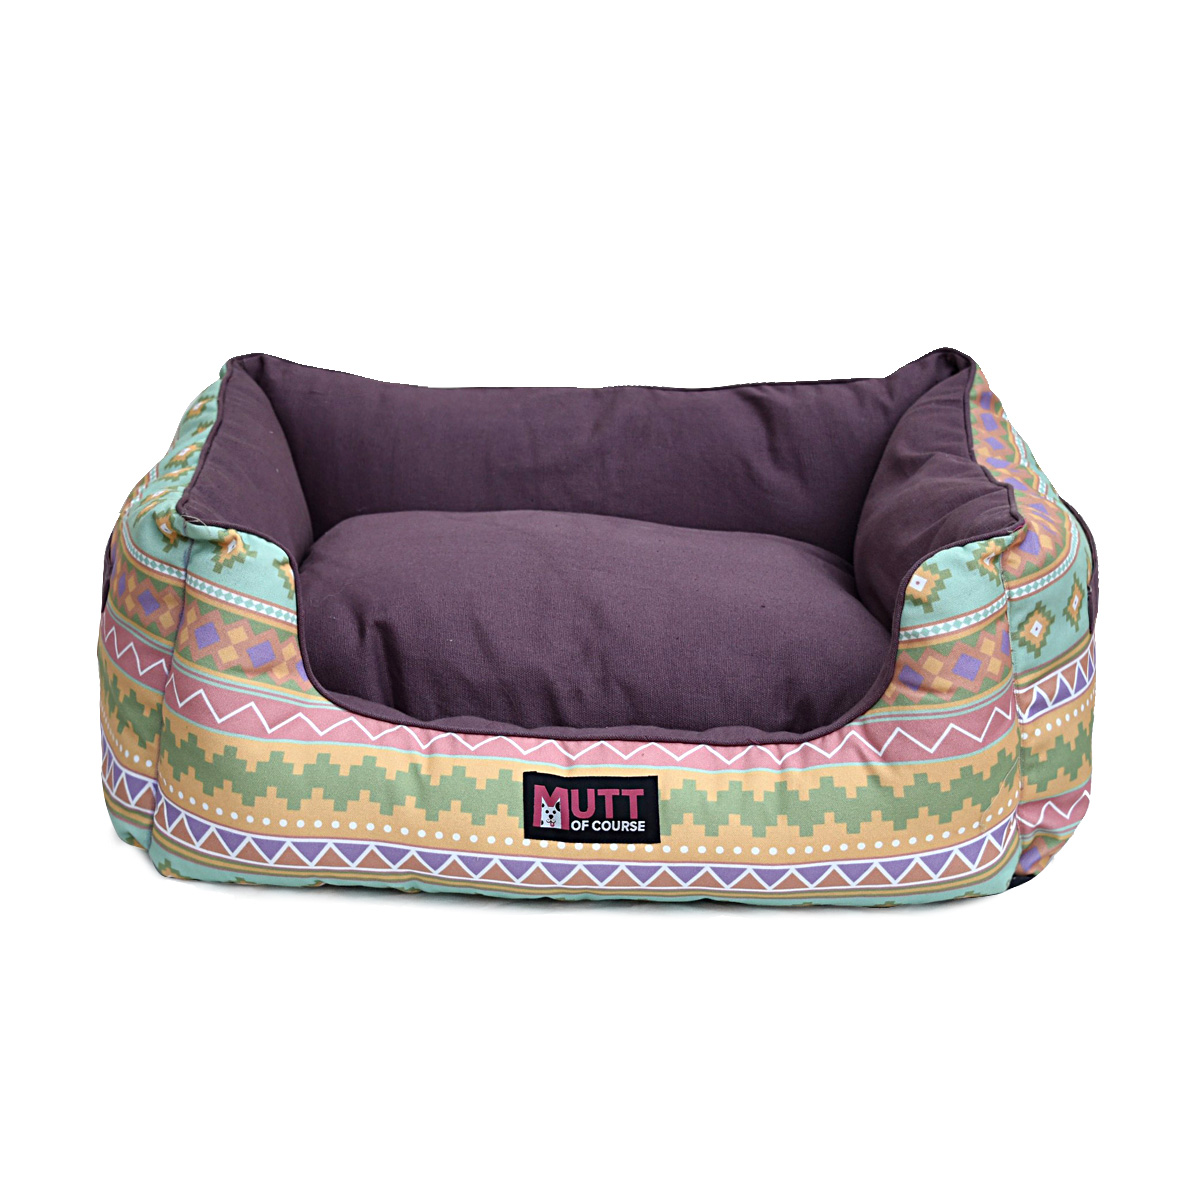 Mutt Of Course Lounger Bed For Dogs - Aztec Printe  - Small